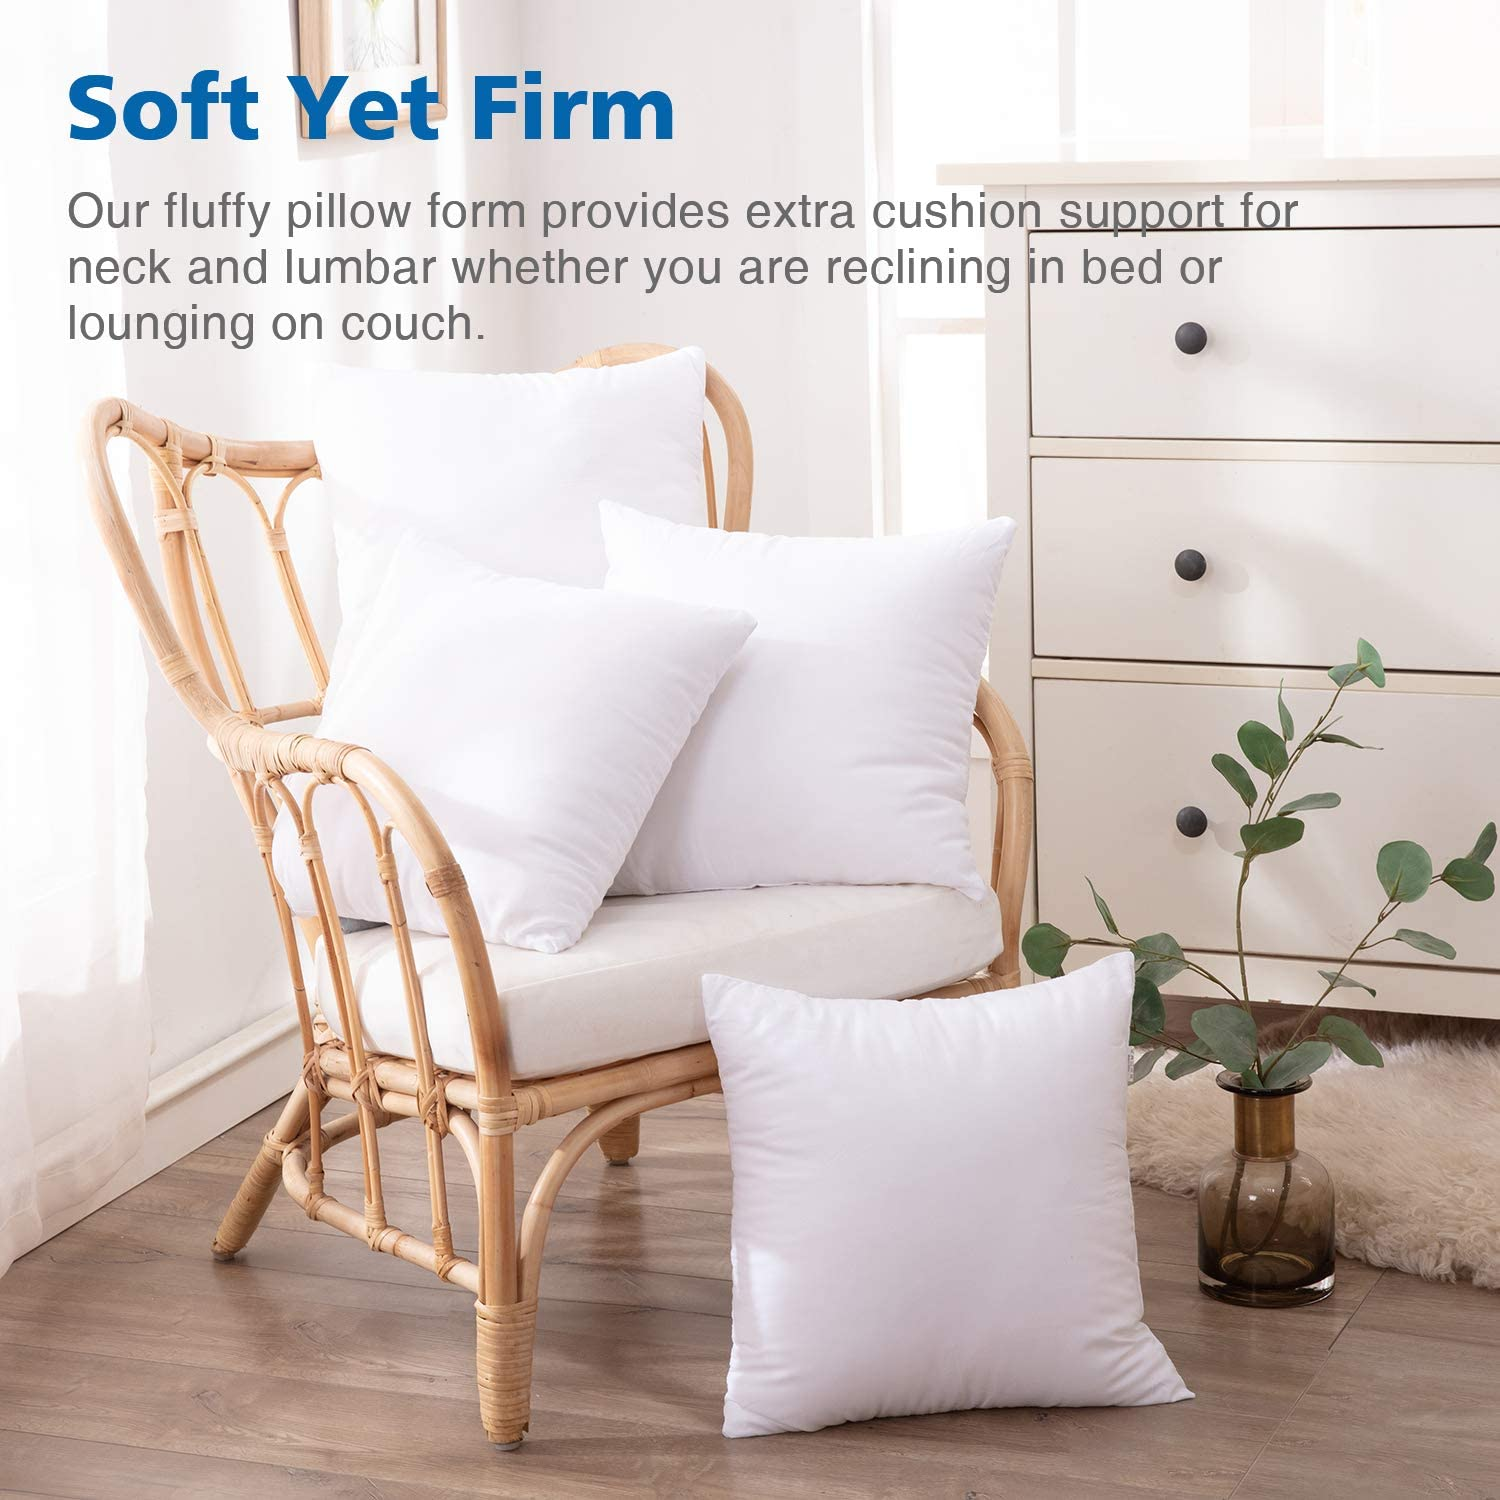 Eggishorn Throw Pillow Inserts (Pack of 2) 16x16 inch Decorative Pillow Stuffer Fully Filling with 450g Premium Resilient Microfiber Suitable for Soft Bed and Couch Cushion: Home & Kitchen